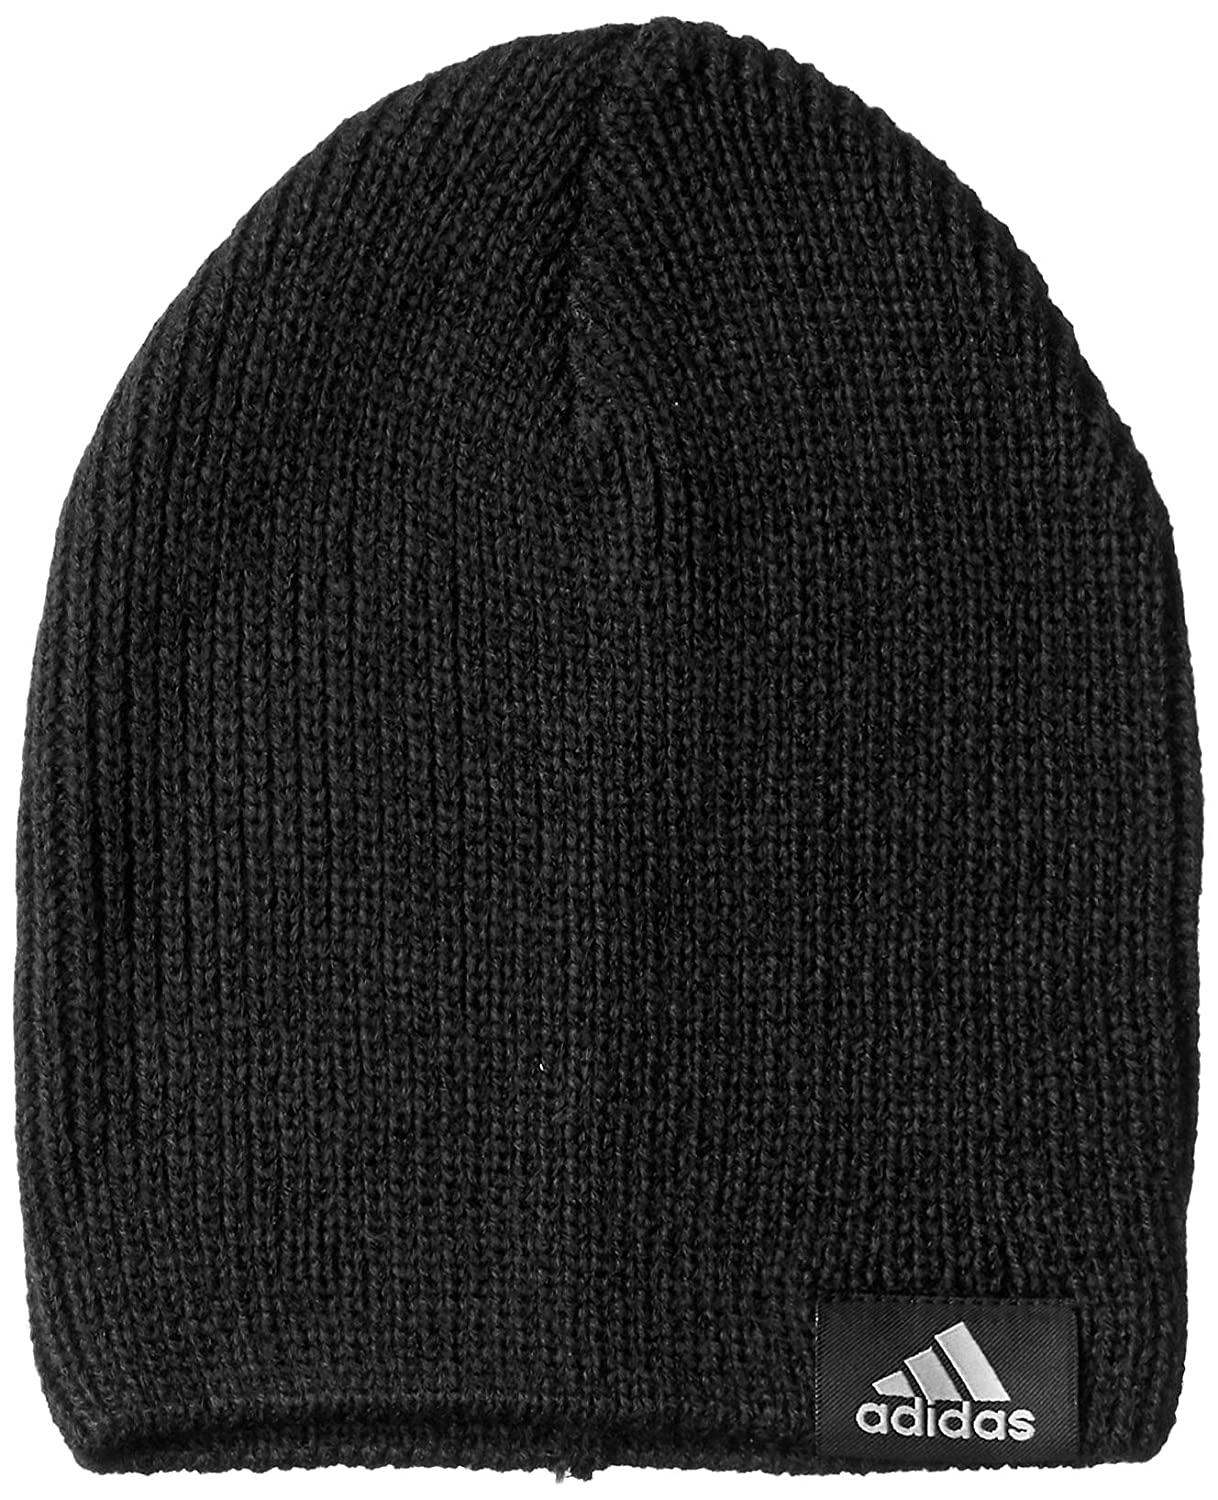 cf2e2a34 adidas Kid's Performance Beanie, Black/Solid Grey, One Size: Amazon.co.uk:  Sports & Outdoors